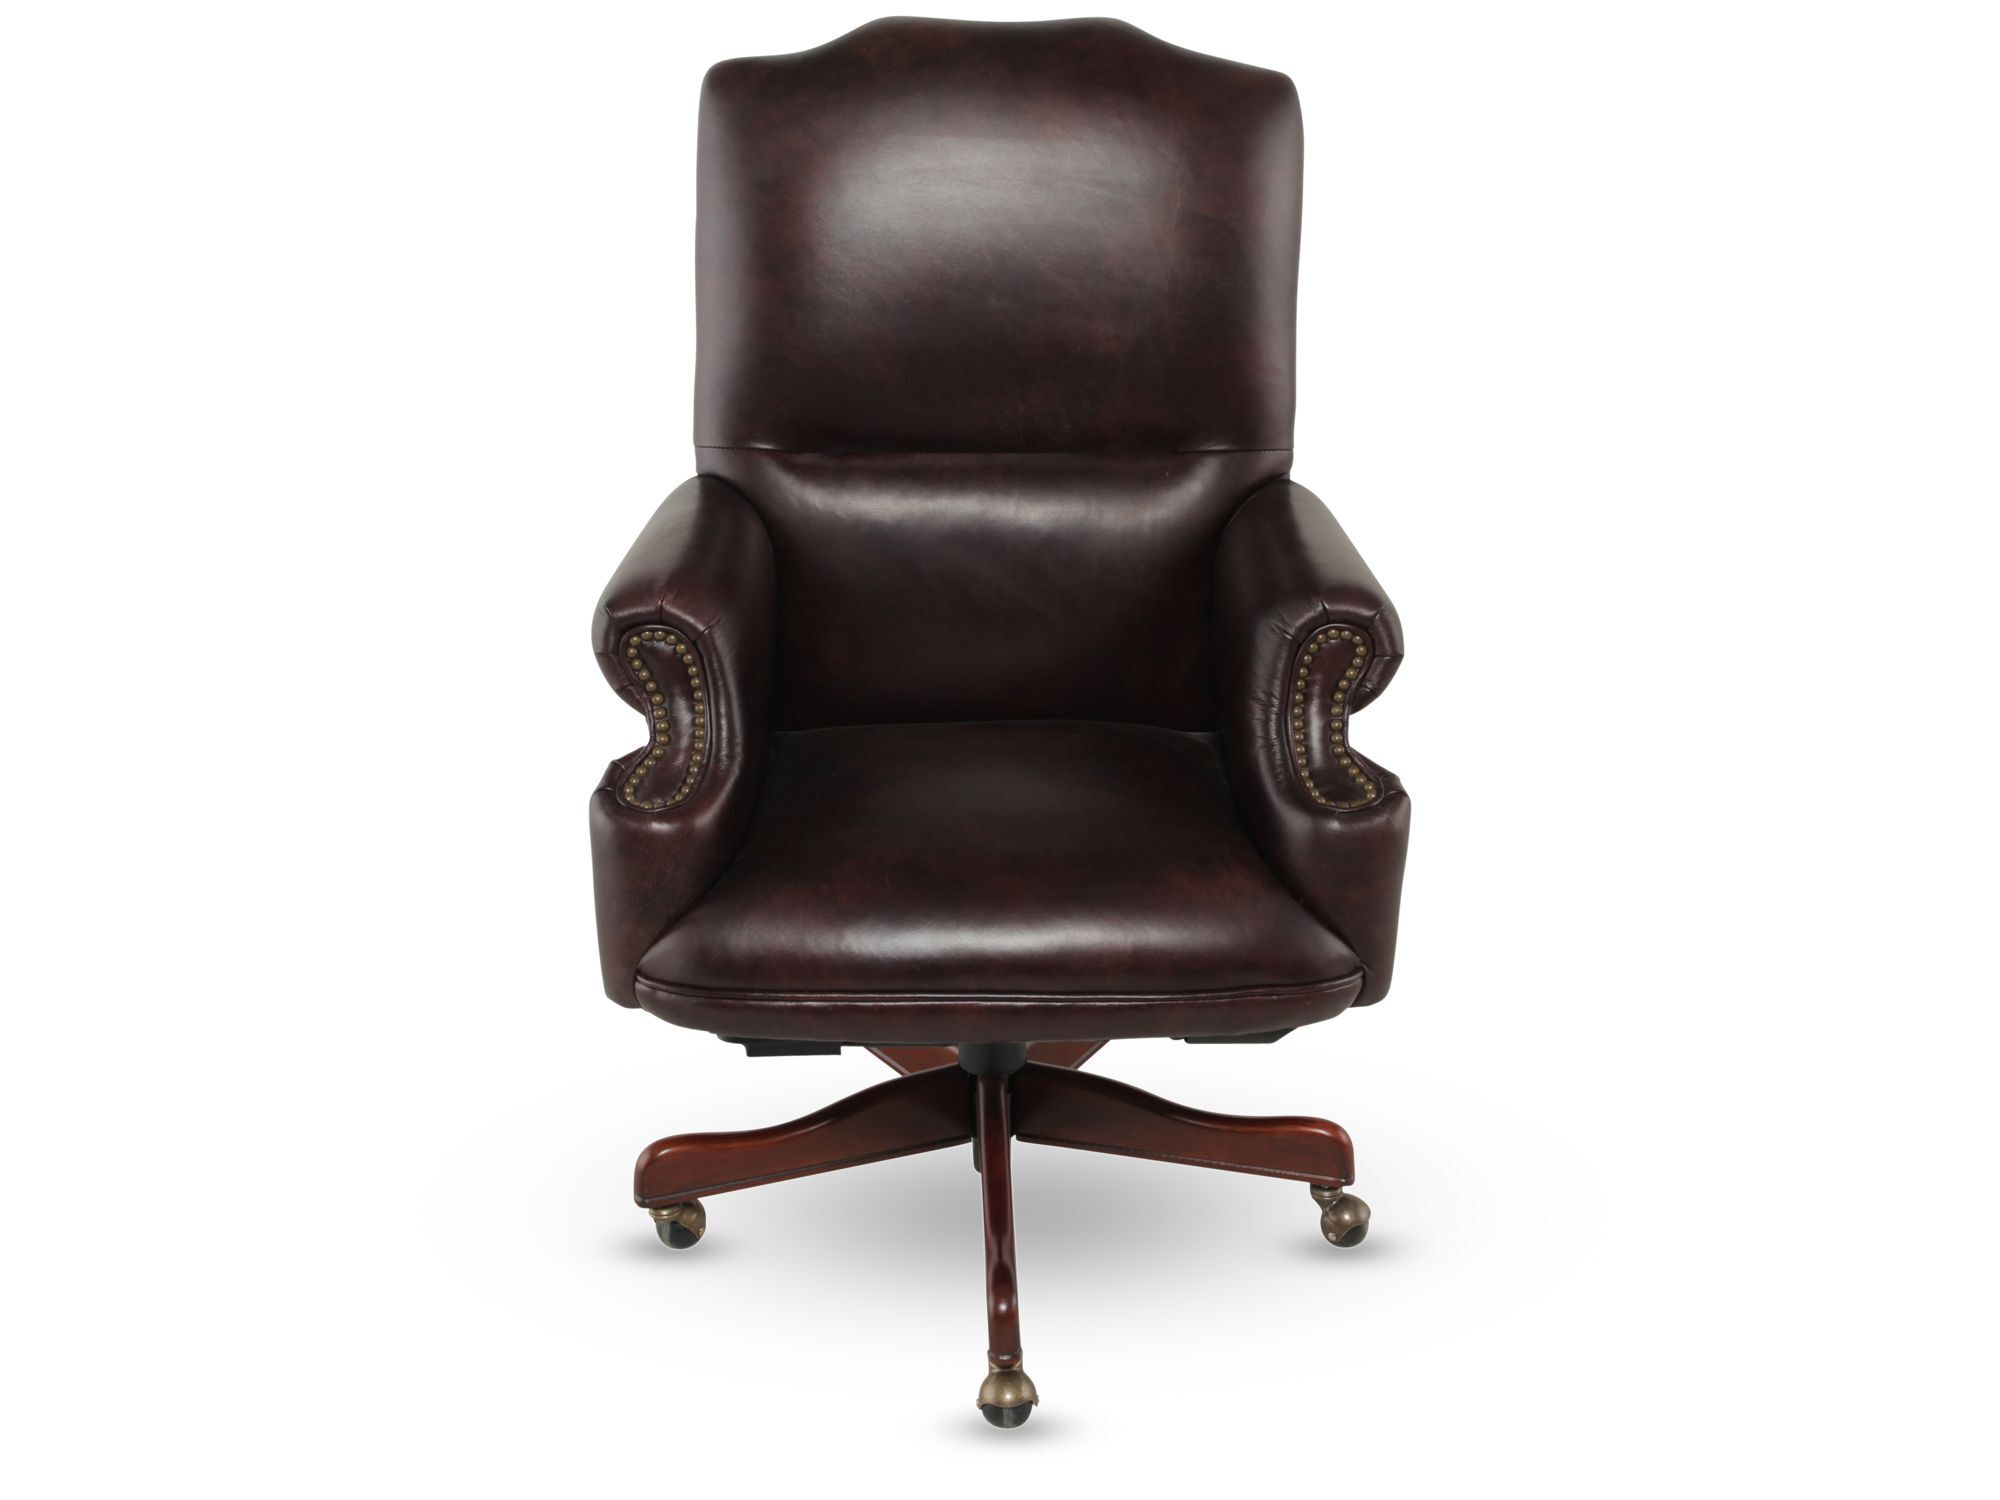 swivel chair office warehouse fishing tesco leather executive tilt in rich brown mathis